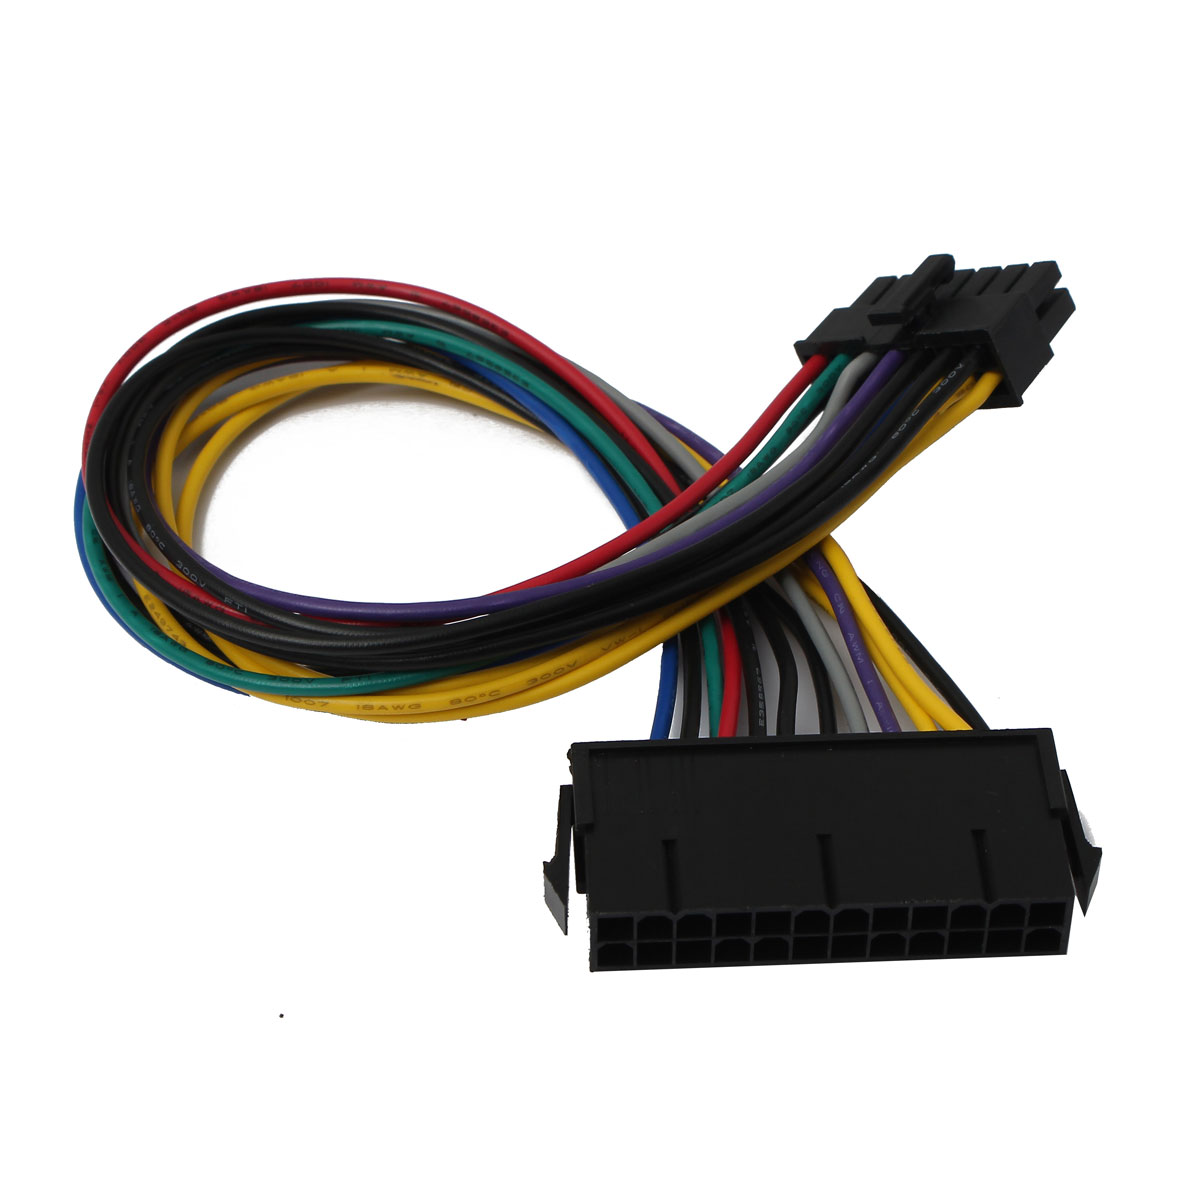 24 Pin To 14 Power Supply Atx Cable For Lenovo Motherboard Out Connector Image